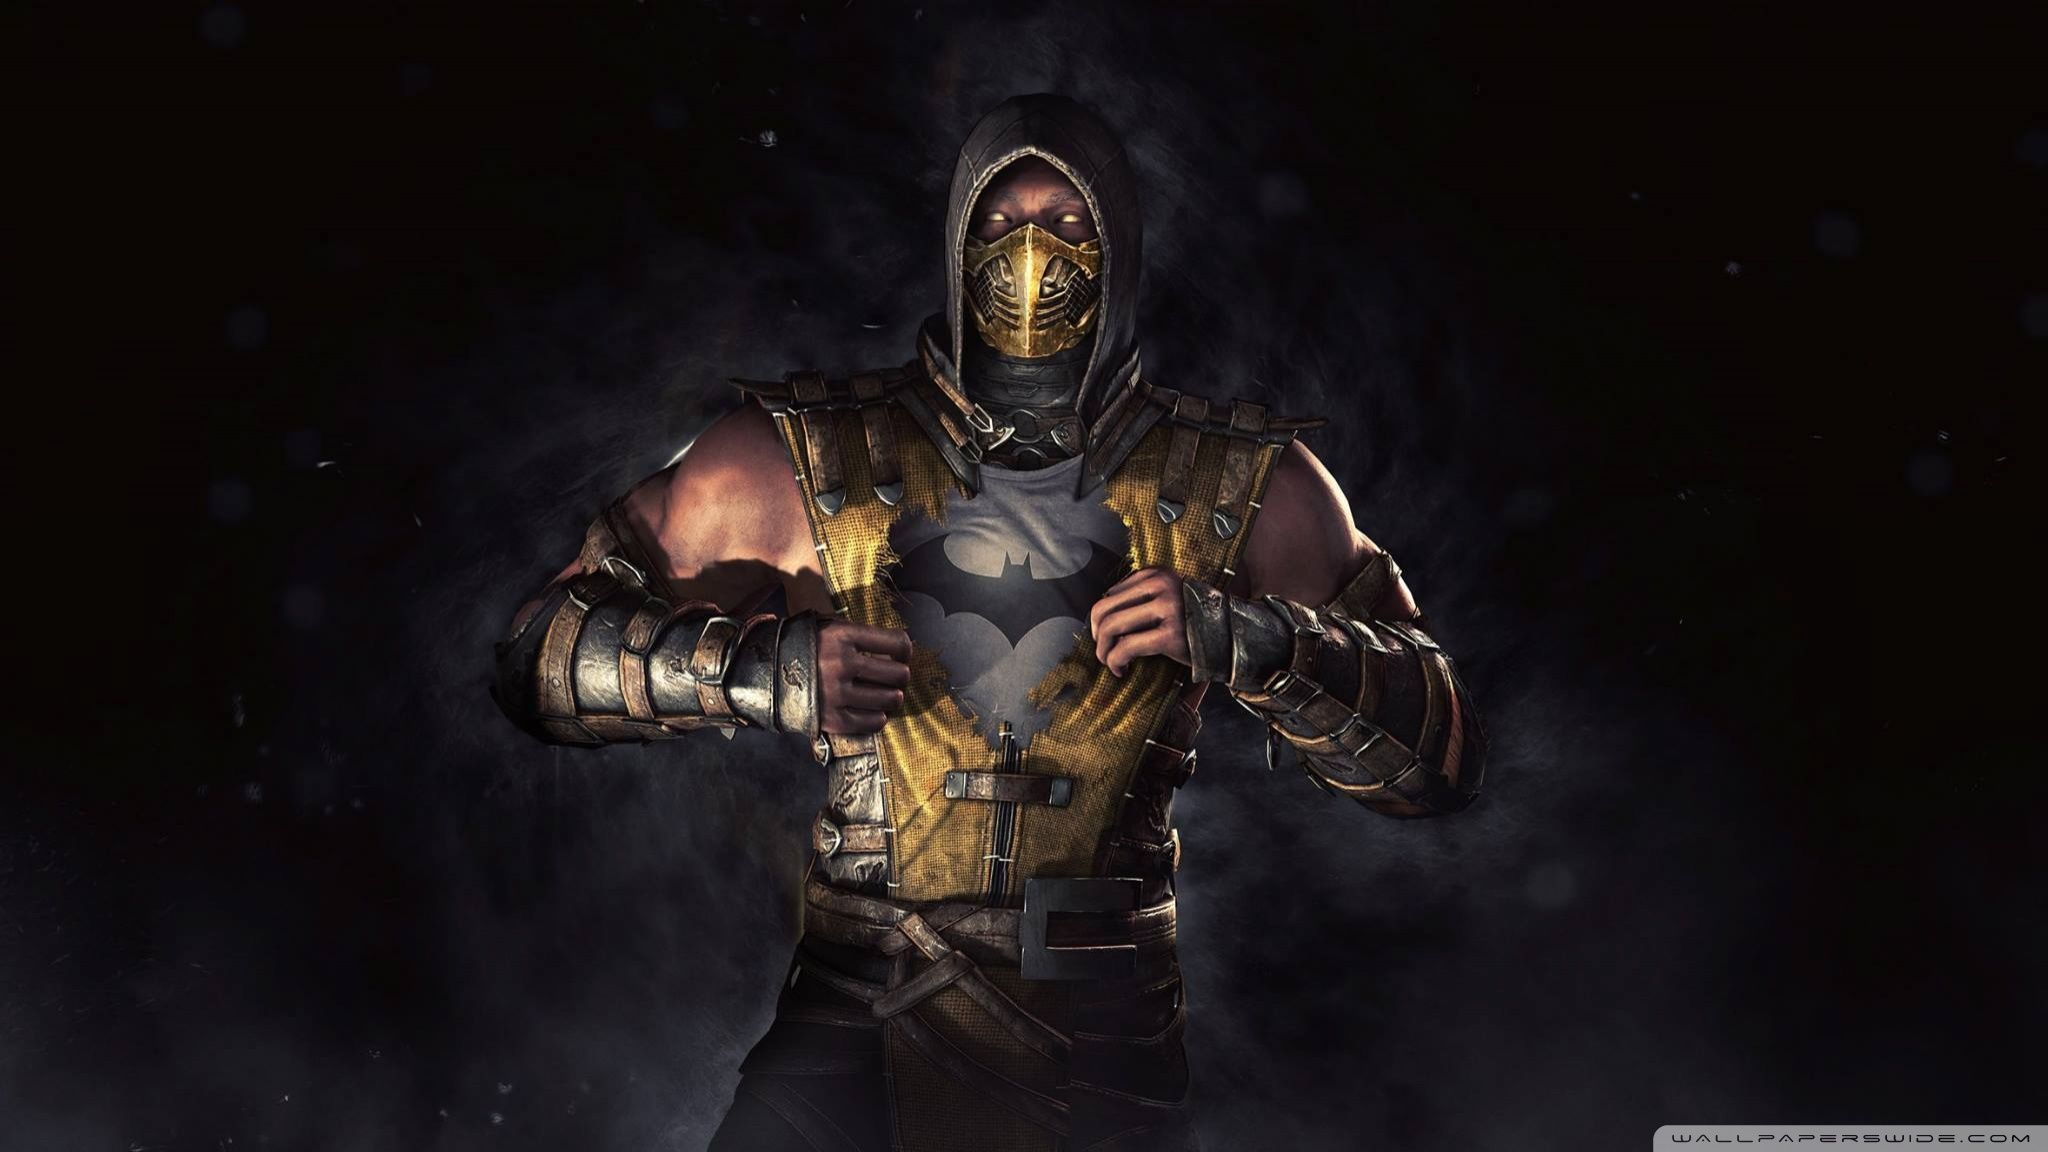 Mortal Kombat Wallpapers - Top Free Mortal Kombat Backgrounds